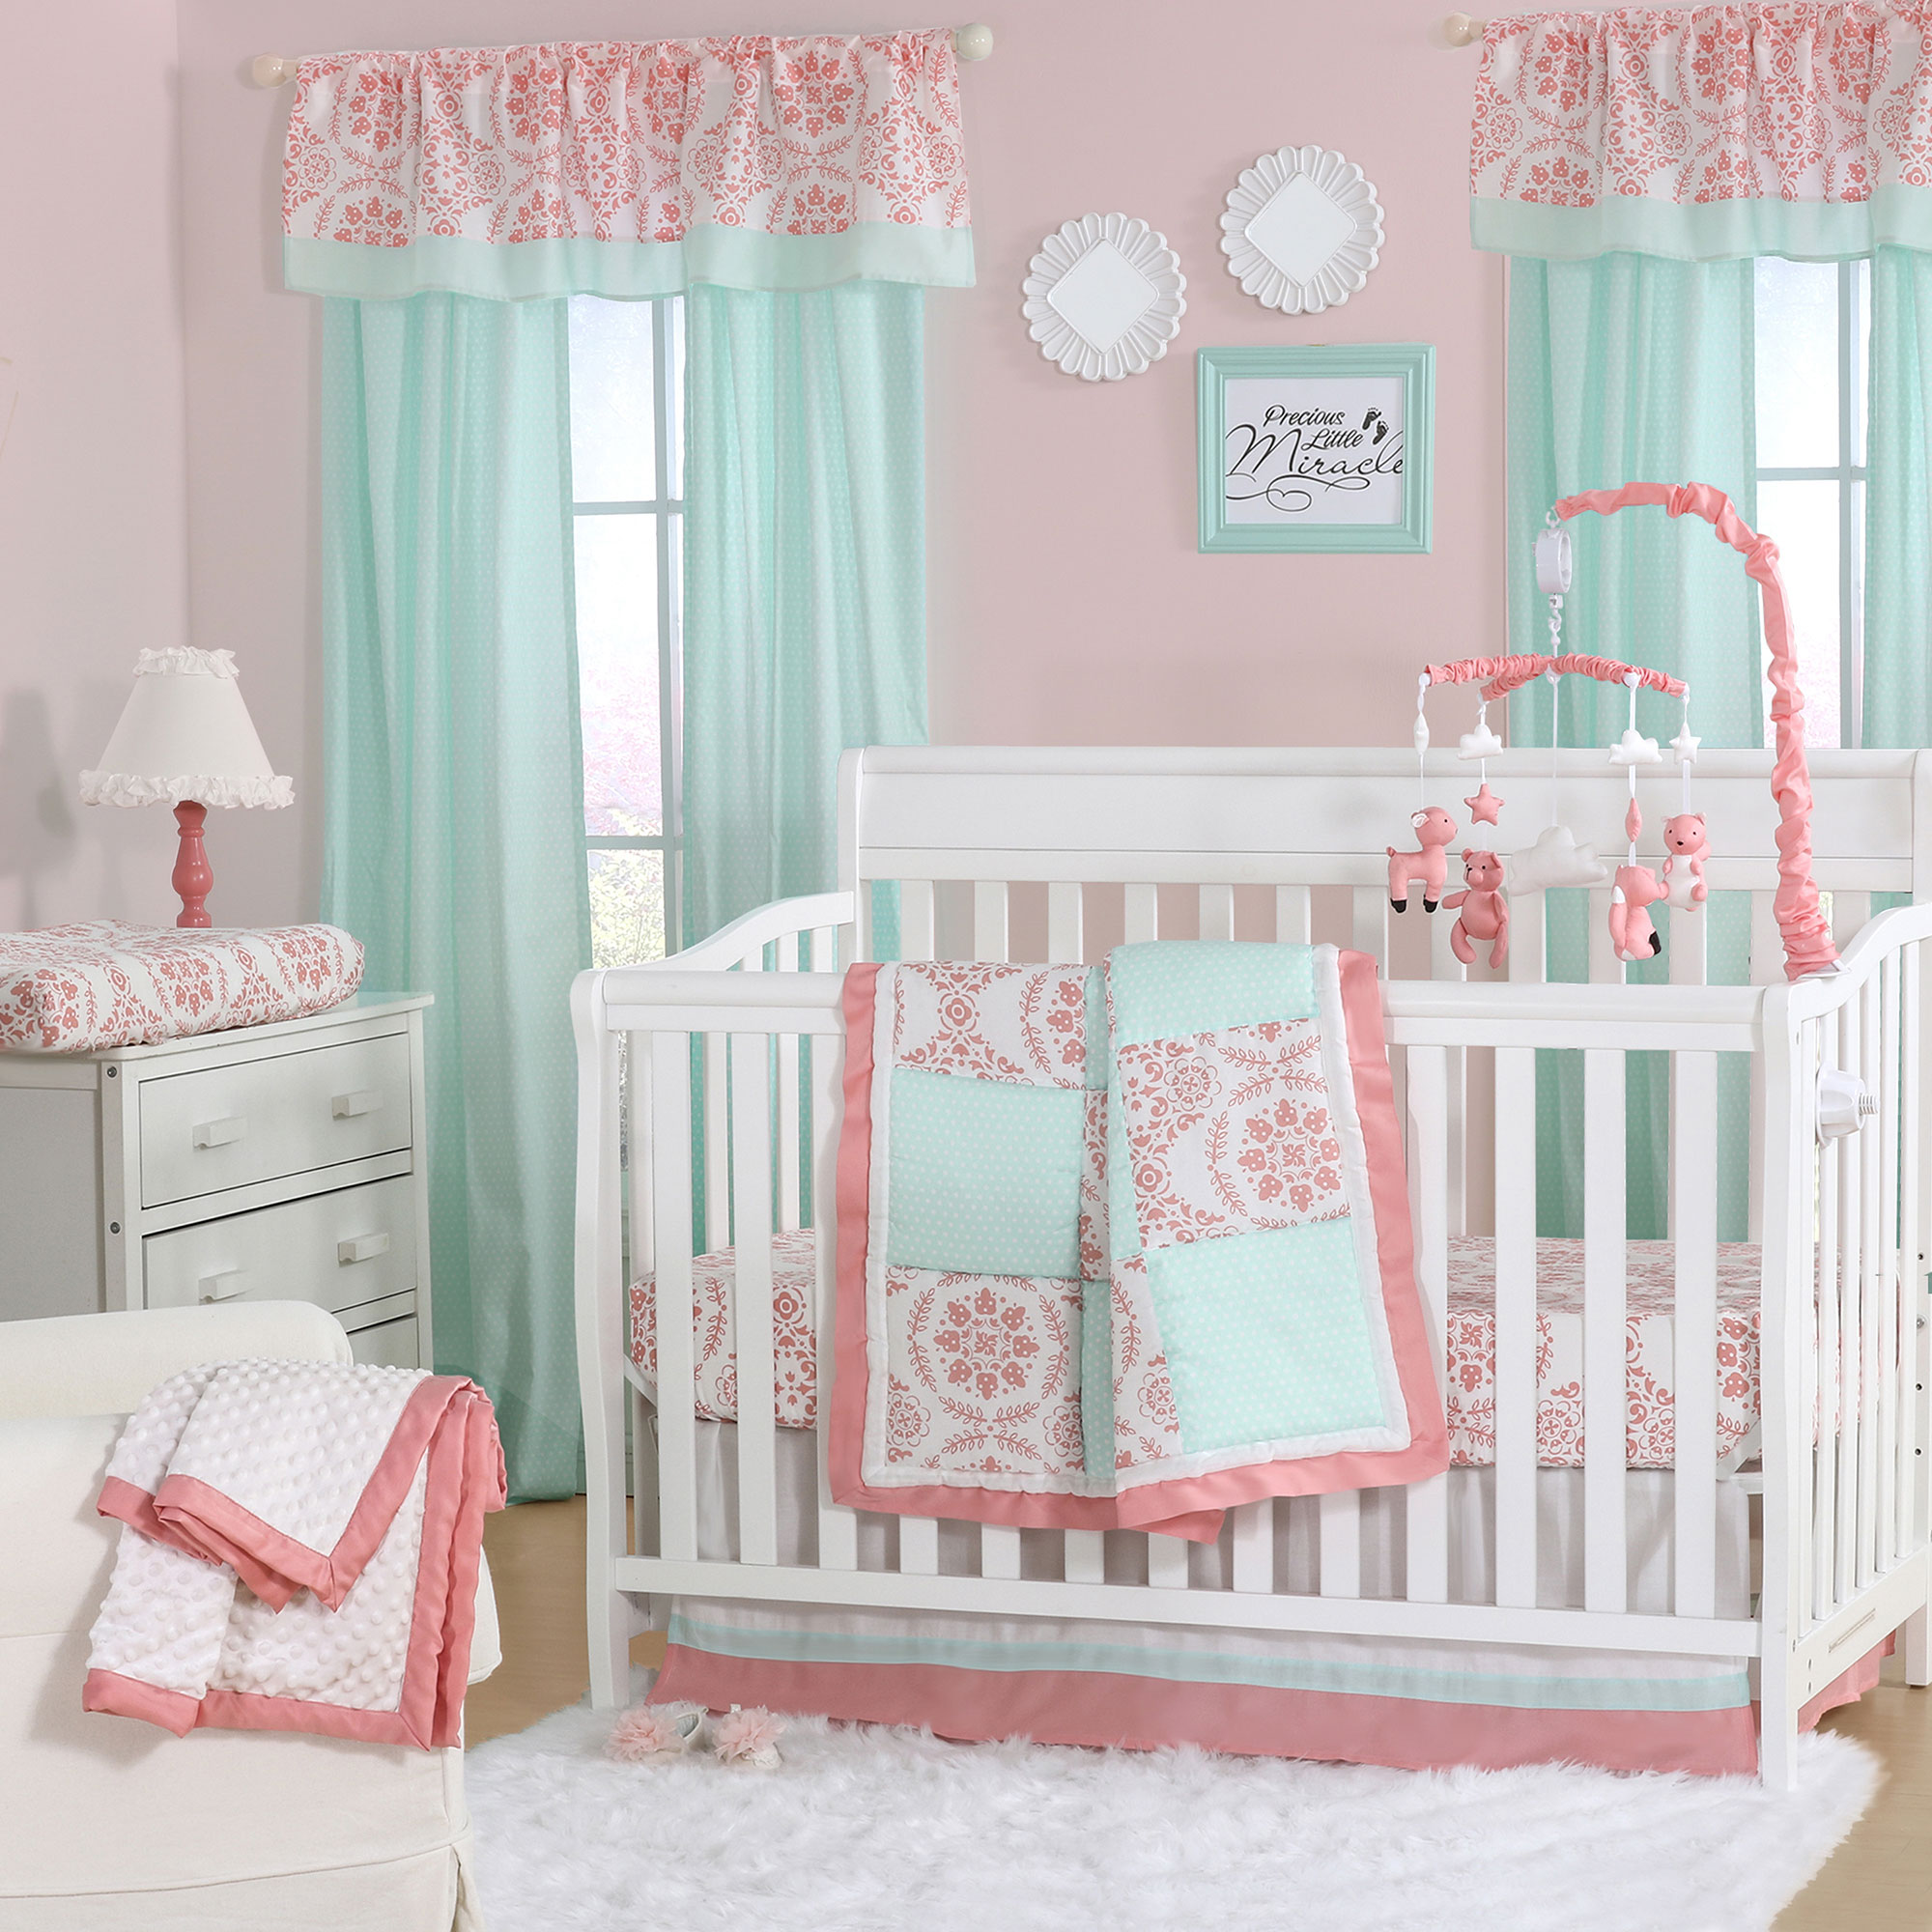 nursery princess bath girls bedding girl sets bed for crib